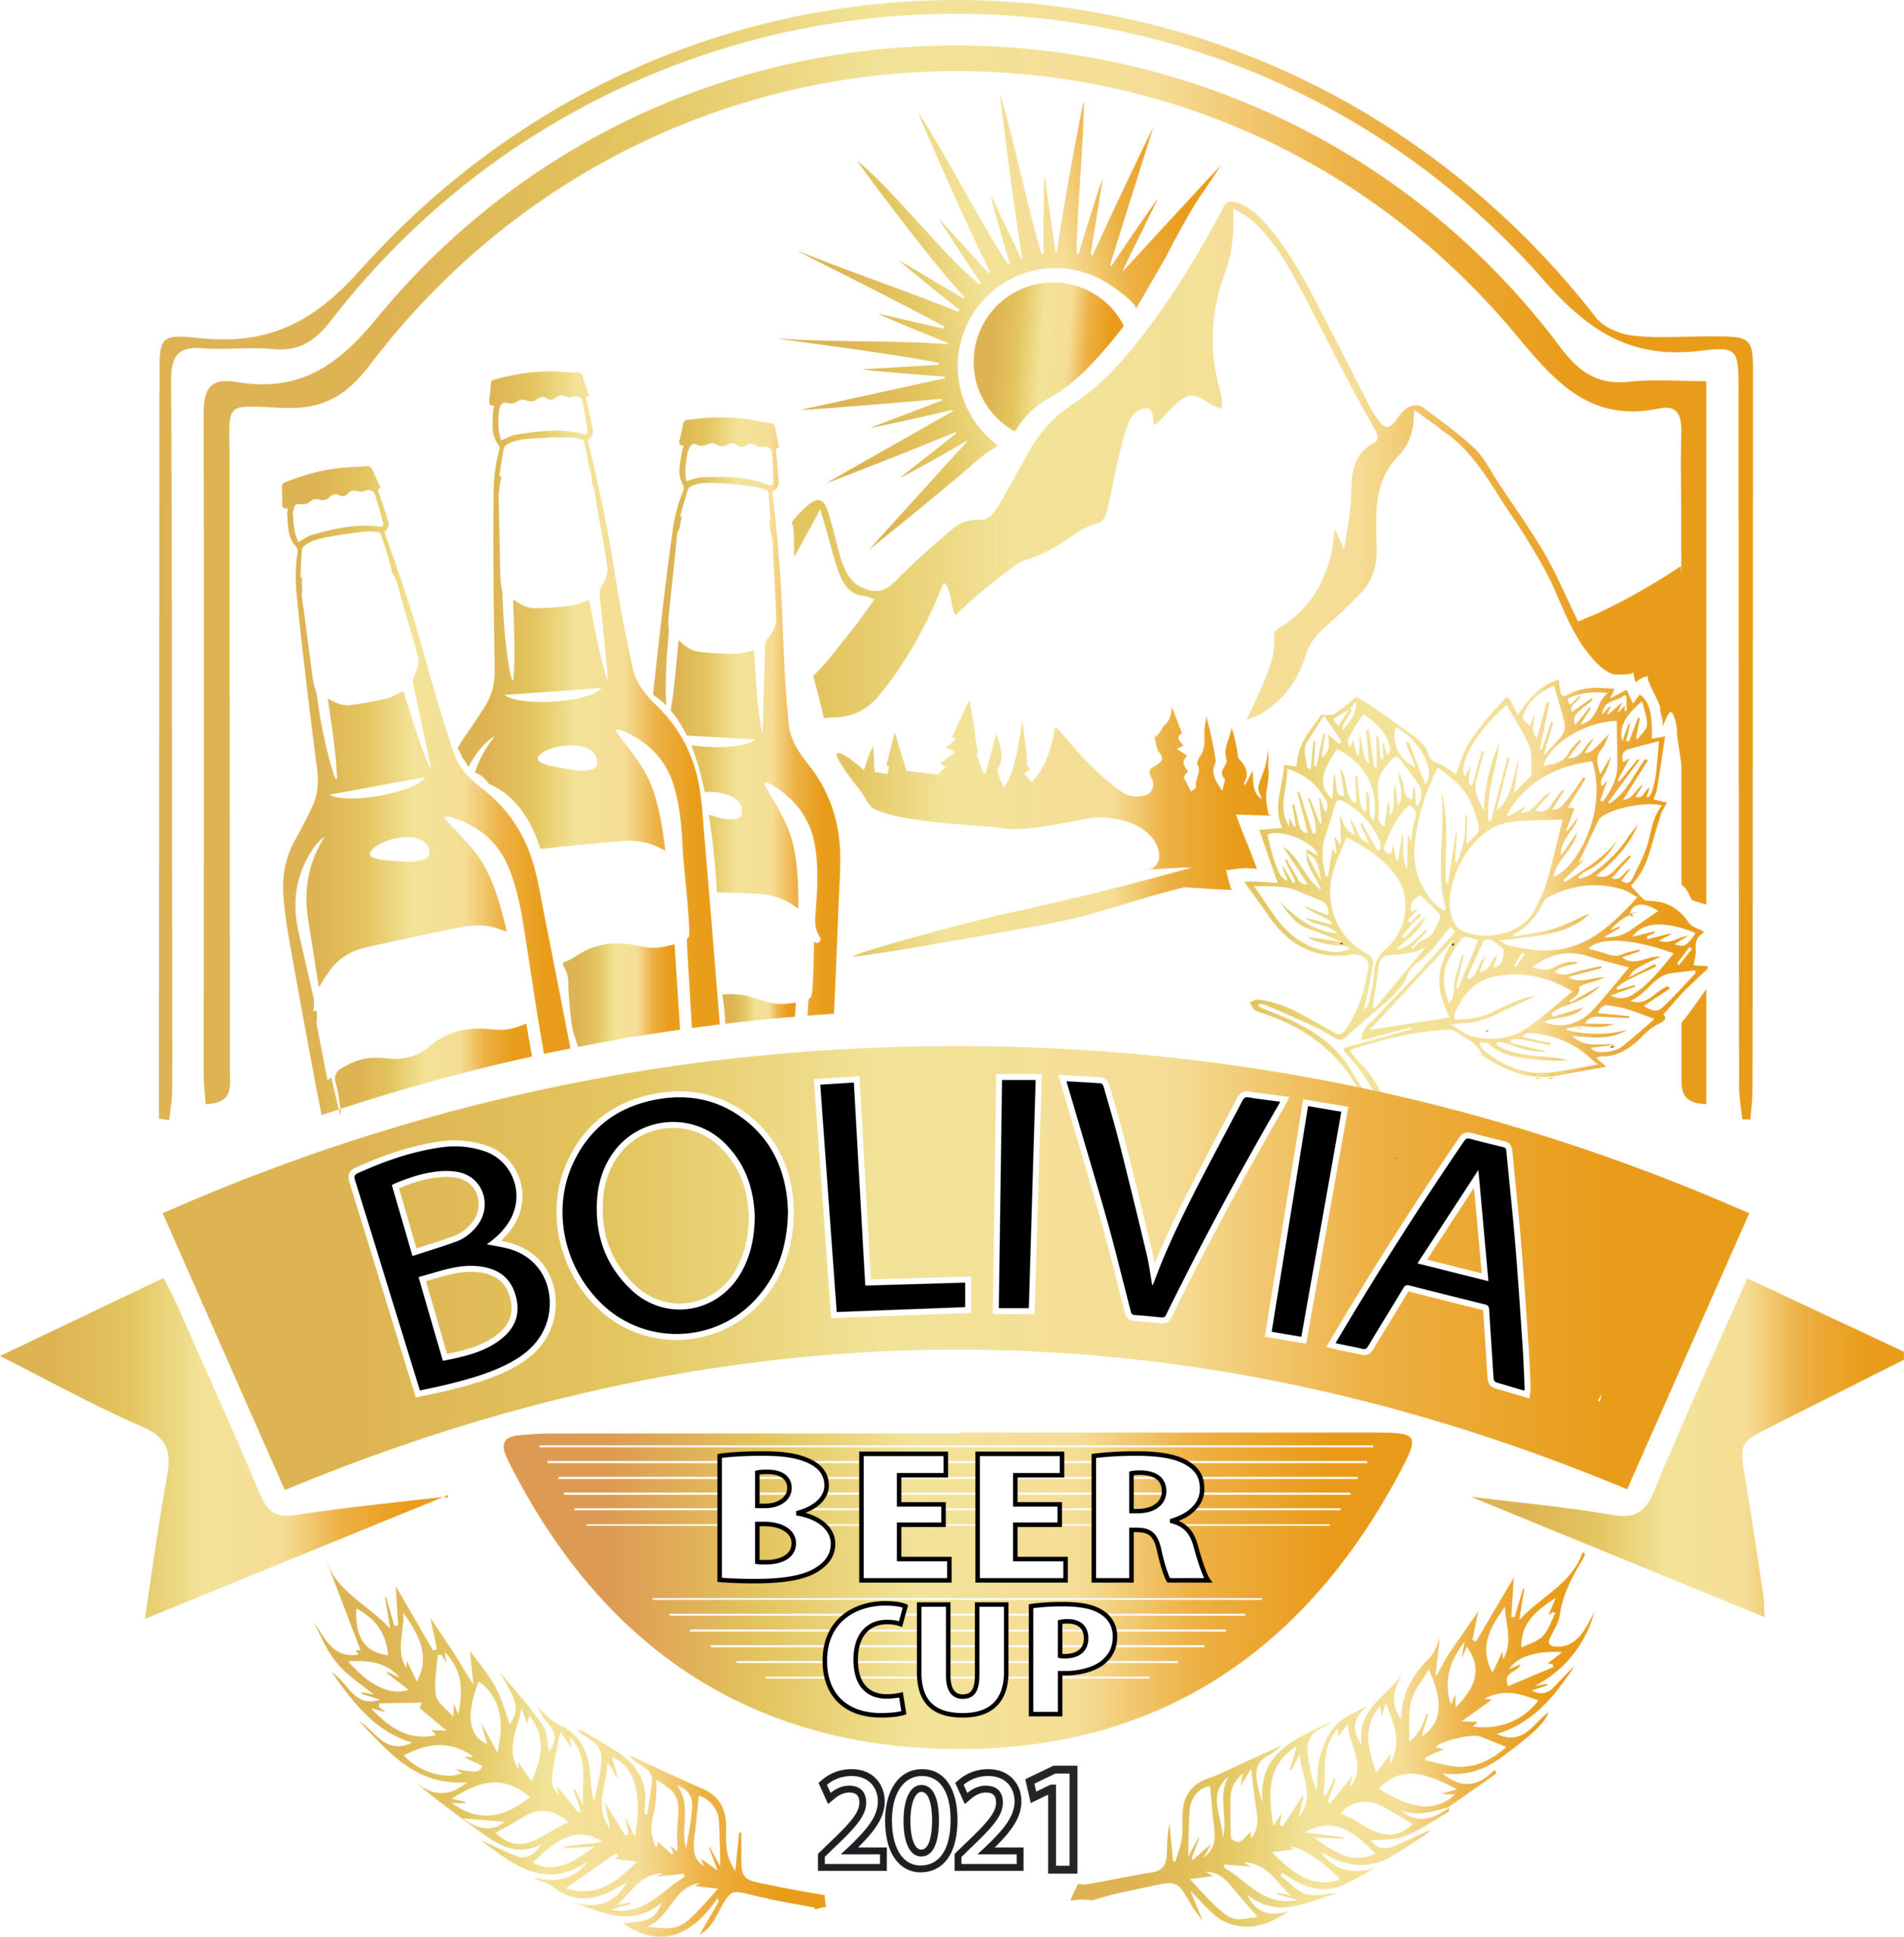 bolivia beer cup